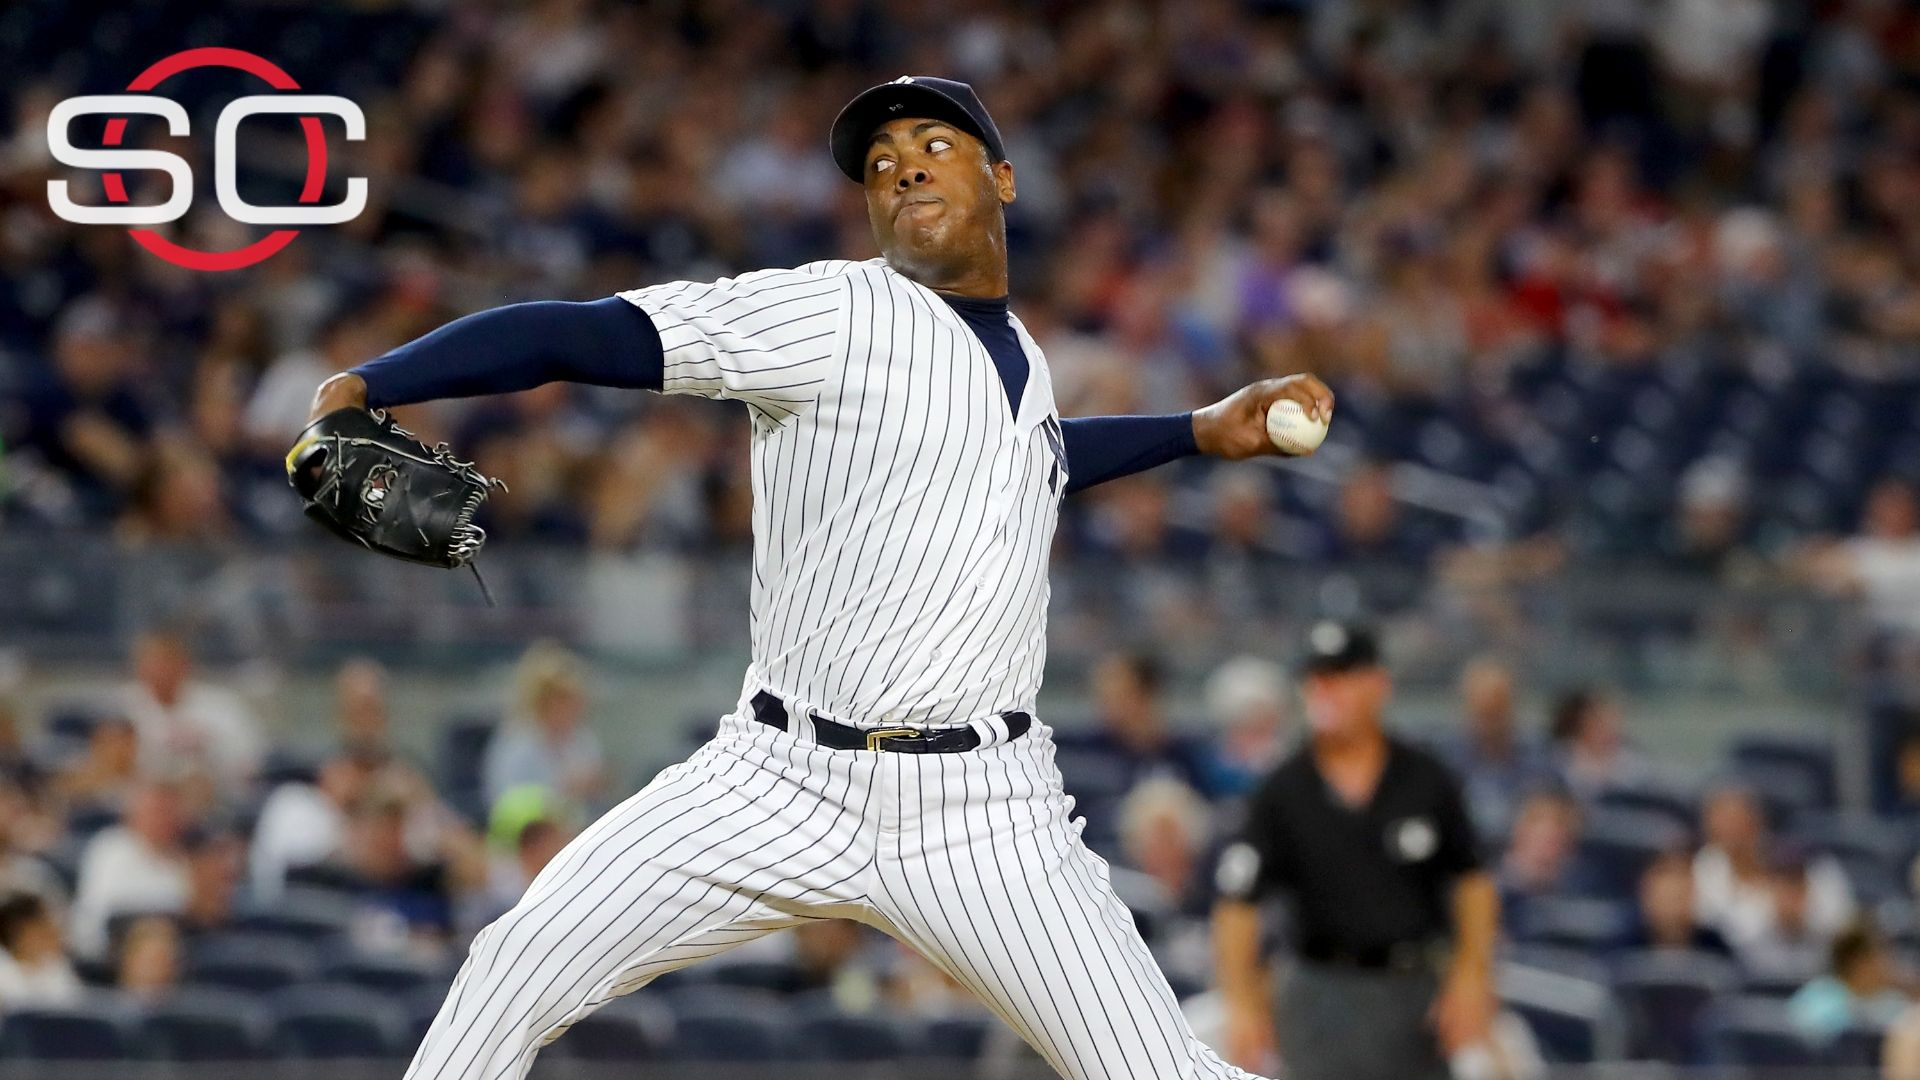 How did Chapman reunite with the Yankees?